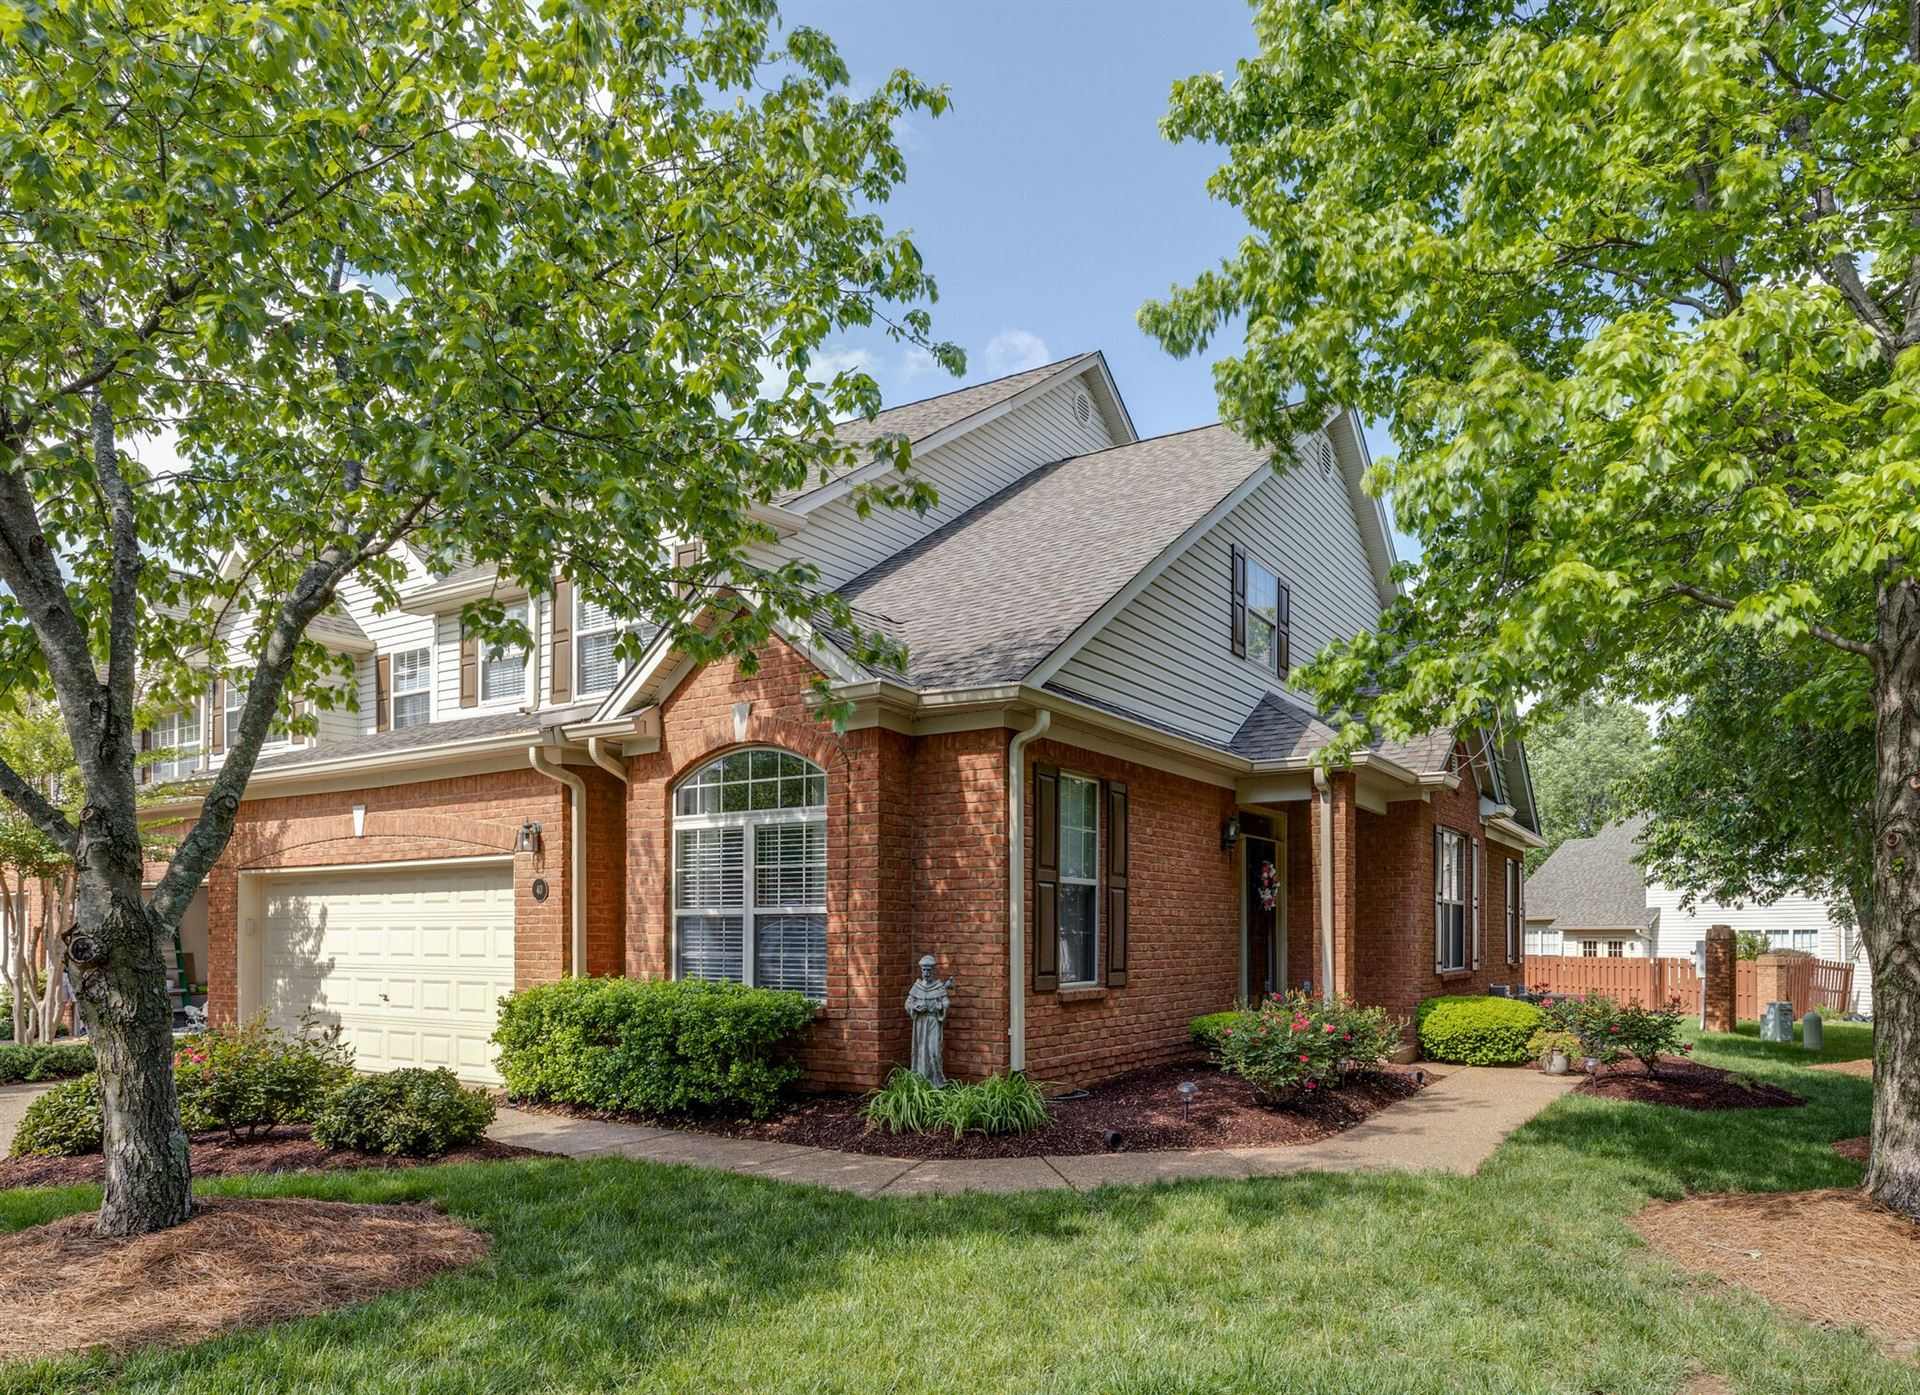 641 Old Hickory Blvd #40, Brentwood, TN 37027 - MLS#: 2250792